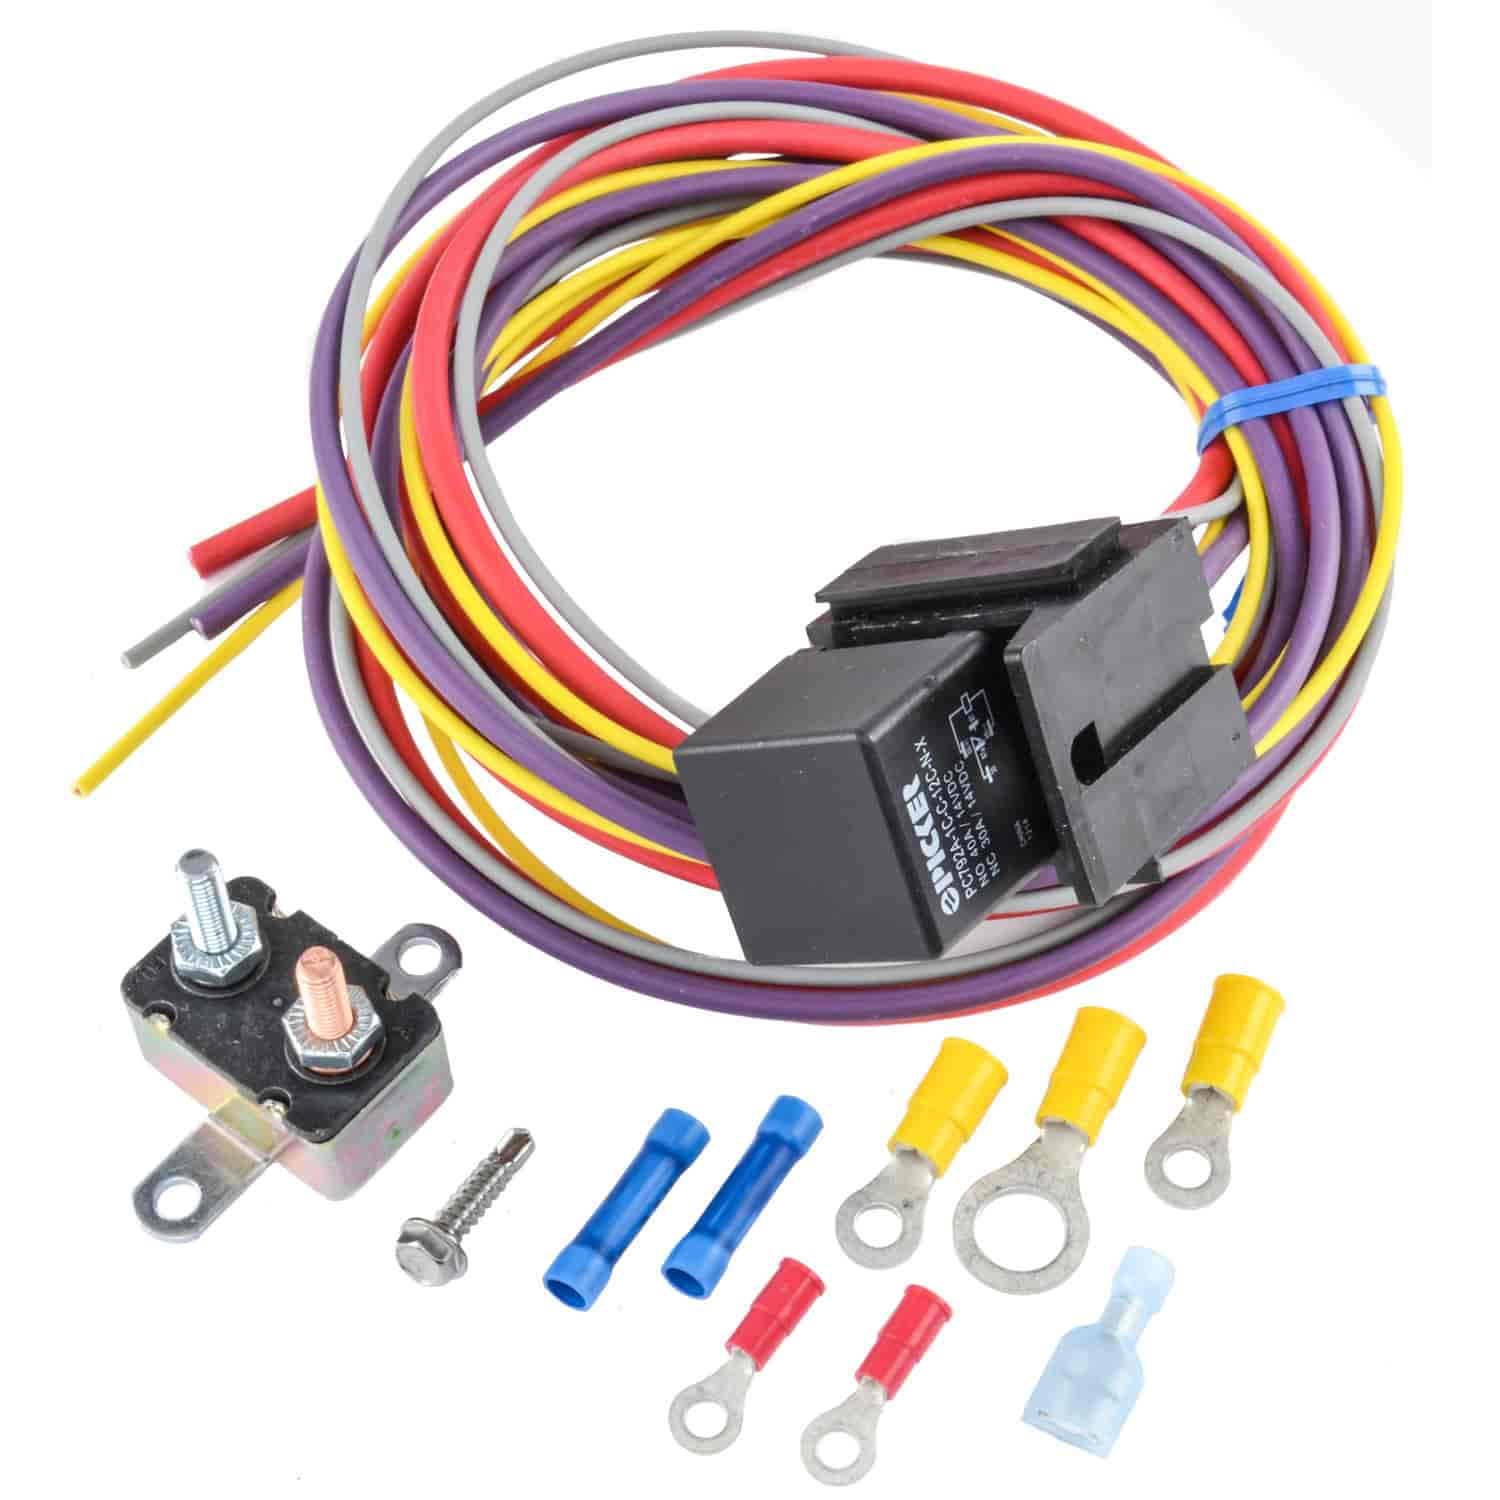 555 10559 jegs performance products 10559 manual controlled single fan VW Wiring Harness Kits at gsmportal.co